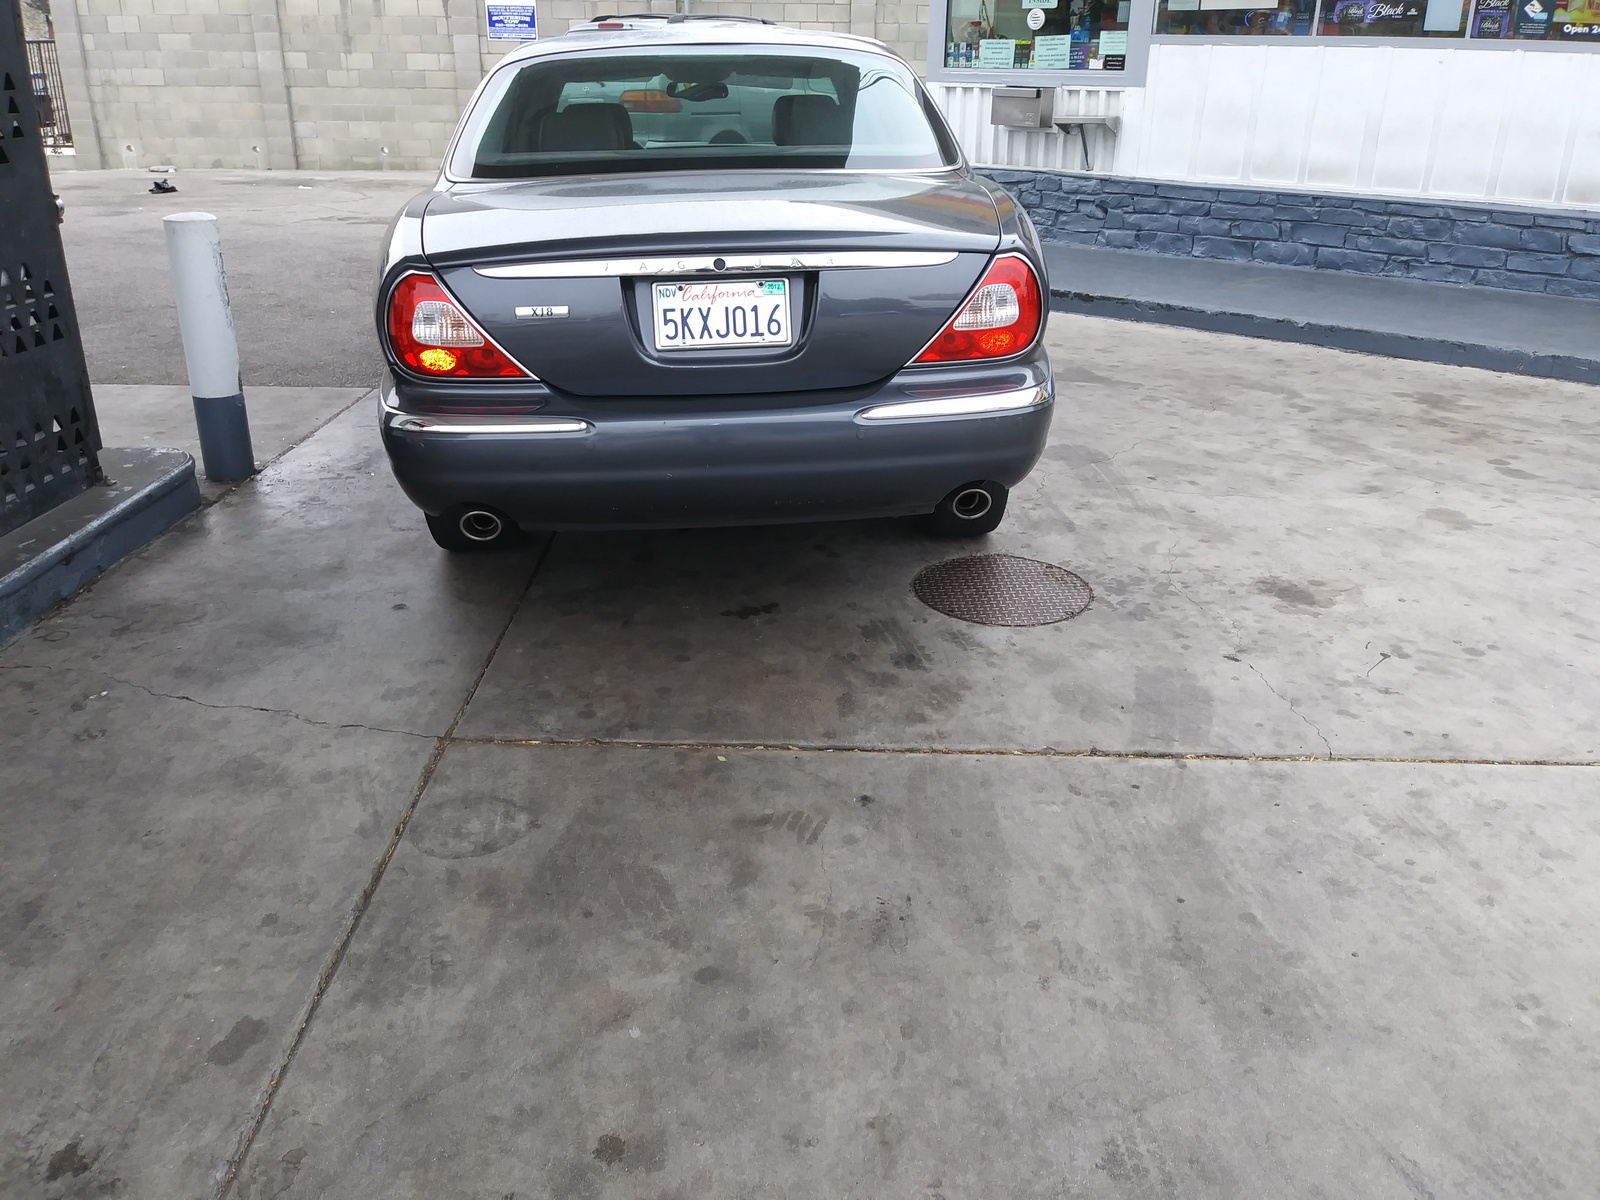 2004 Jaguar Xj8 Common Problems 2005 Had Air Compressor Install Now To High In Rear